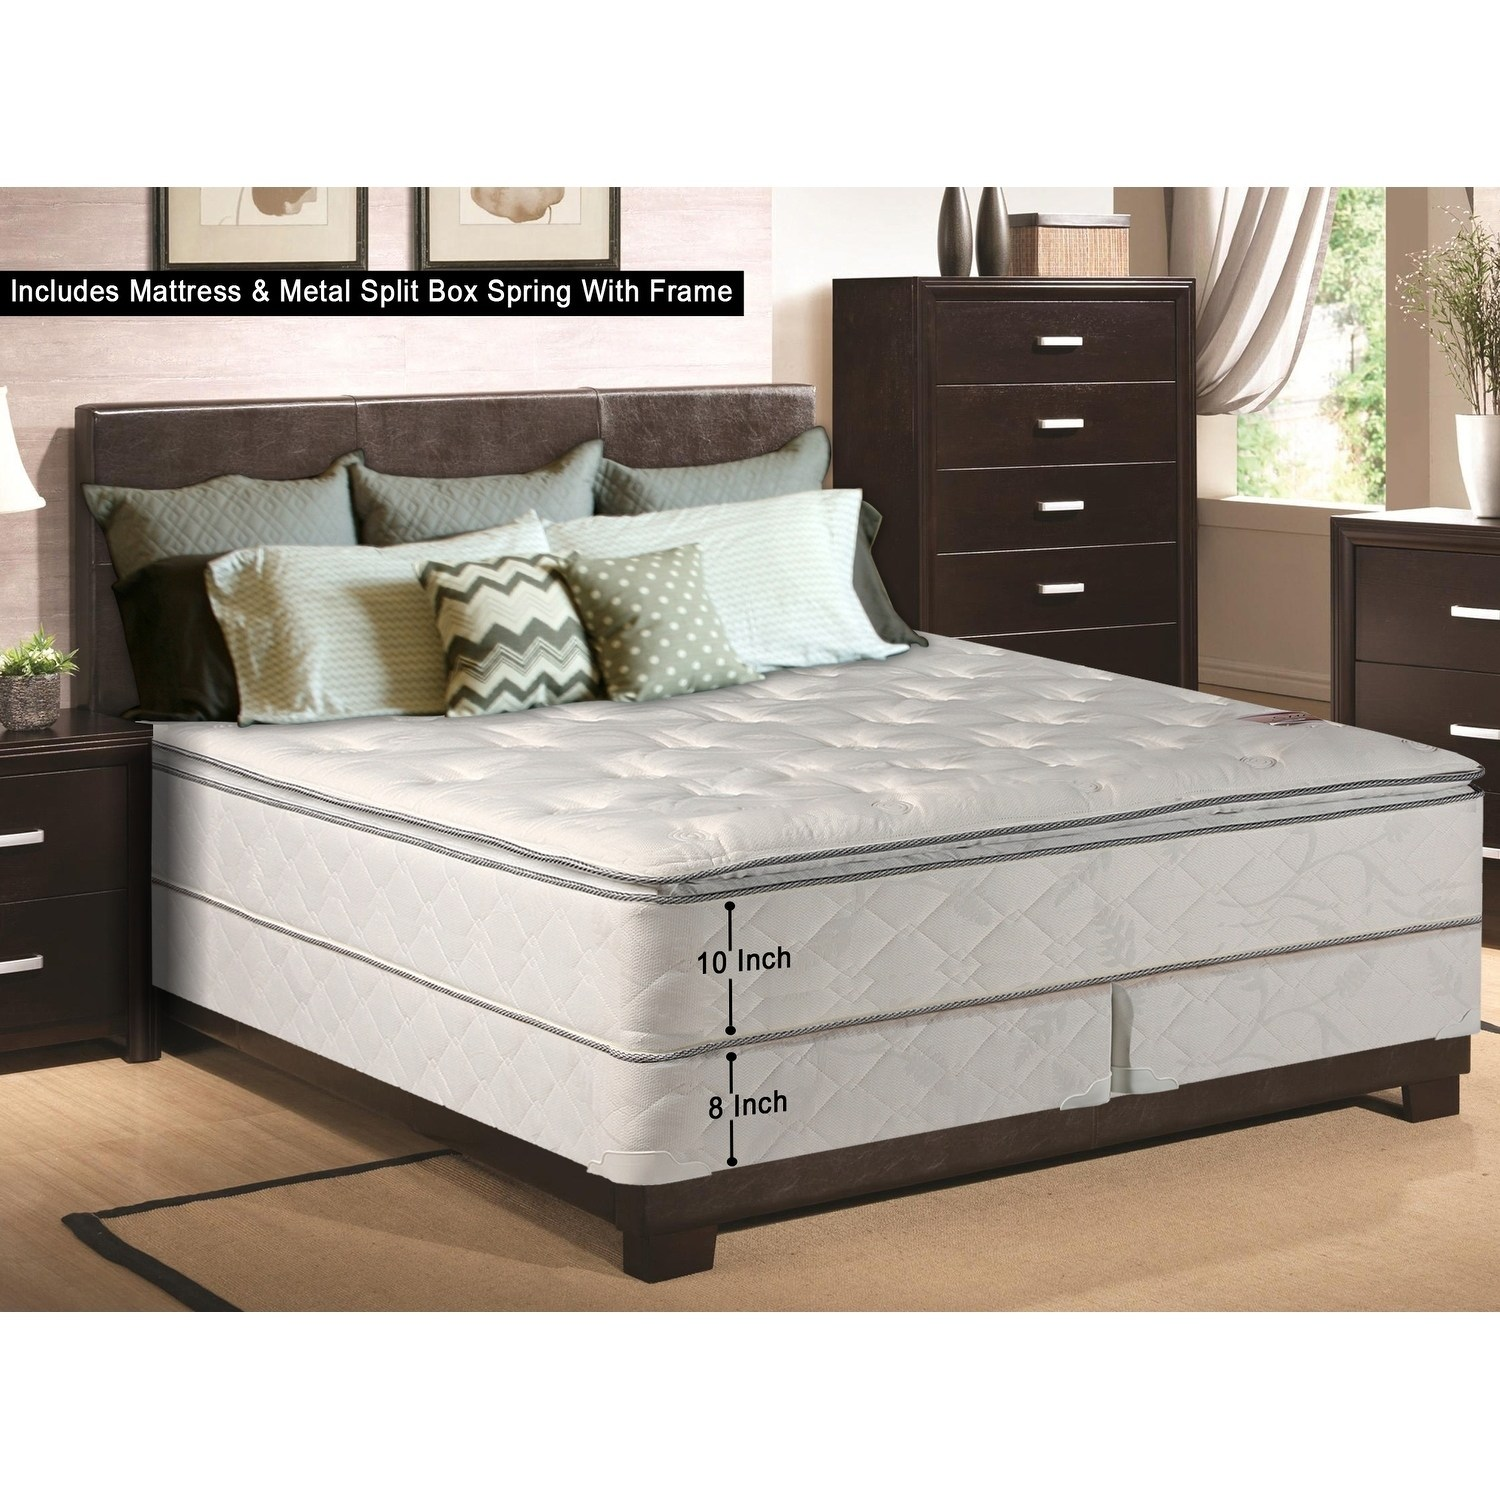 Continental Sleep ,10-Inch Medium Plush Pillowtop Orthopedic type Mattress and 8-inch Semi Flex Box Spring with Frame